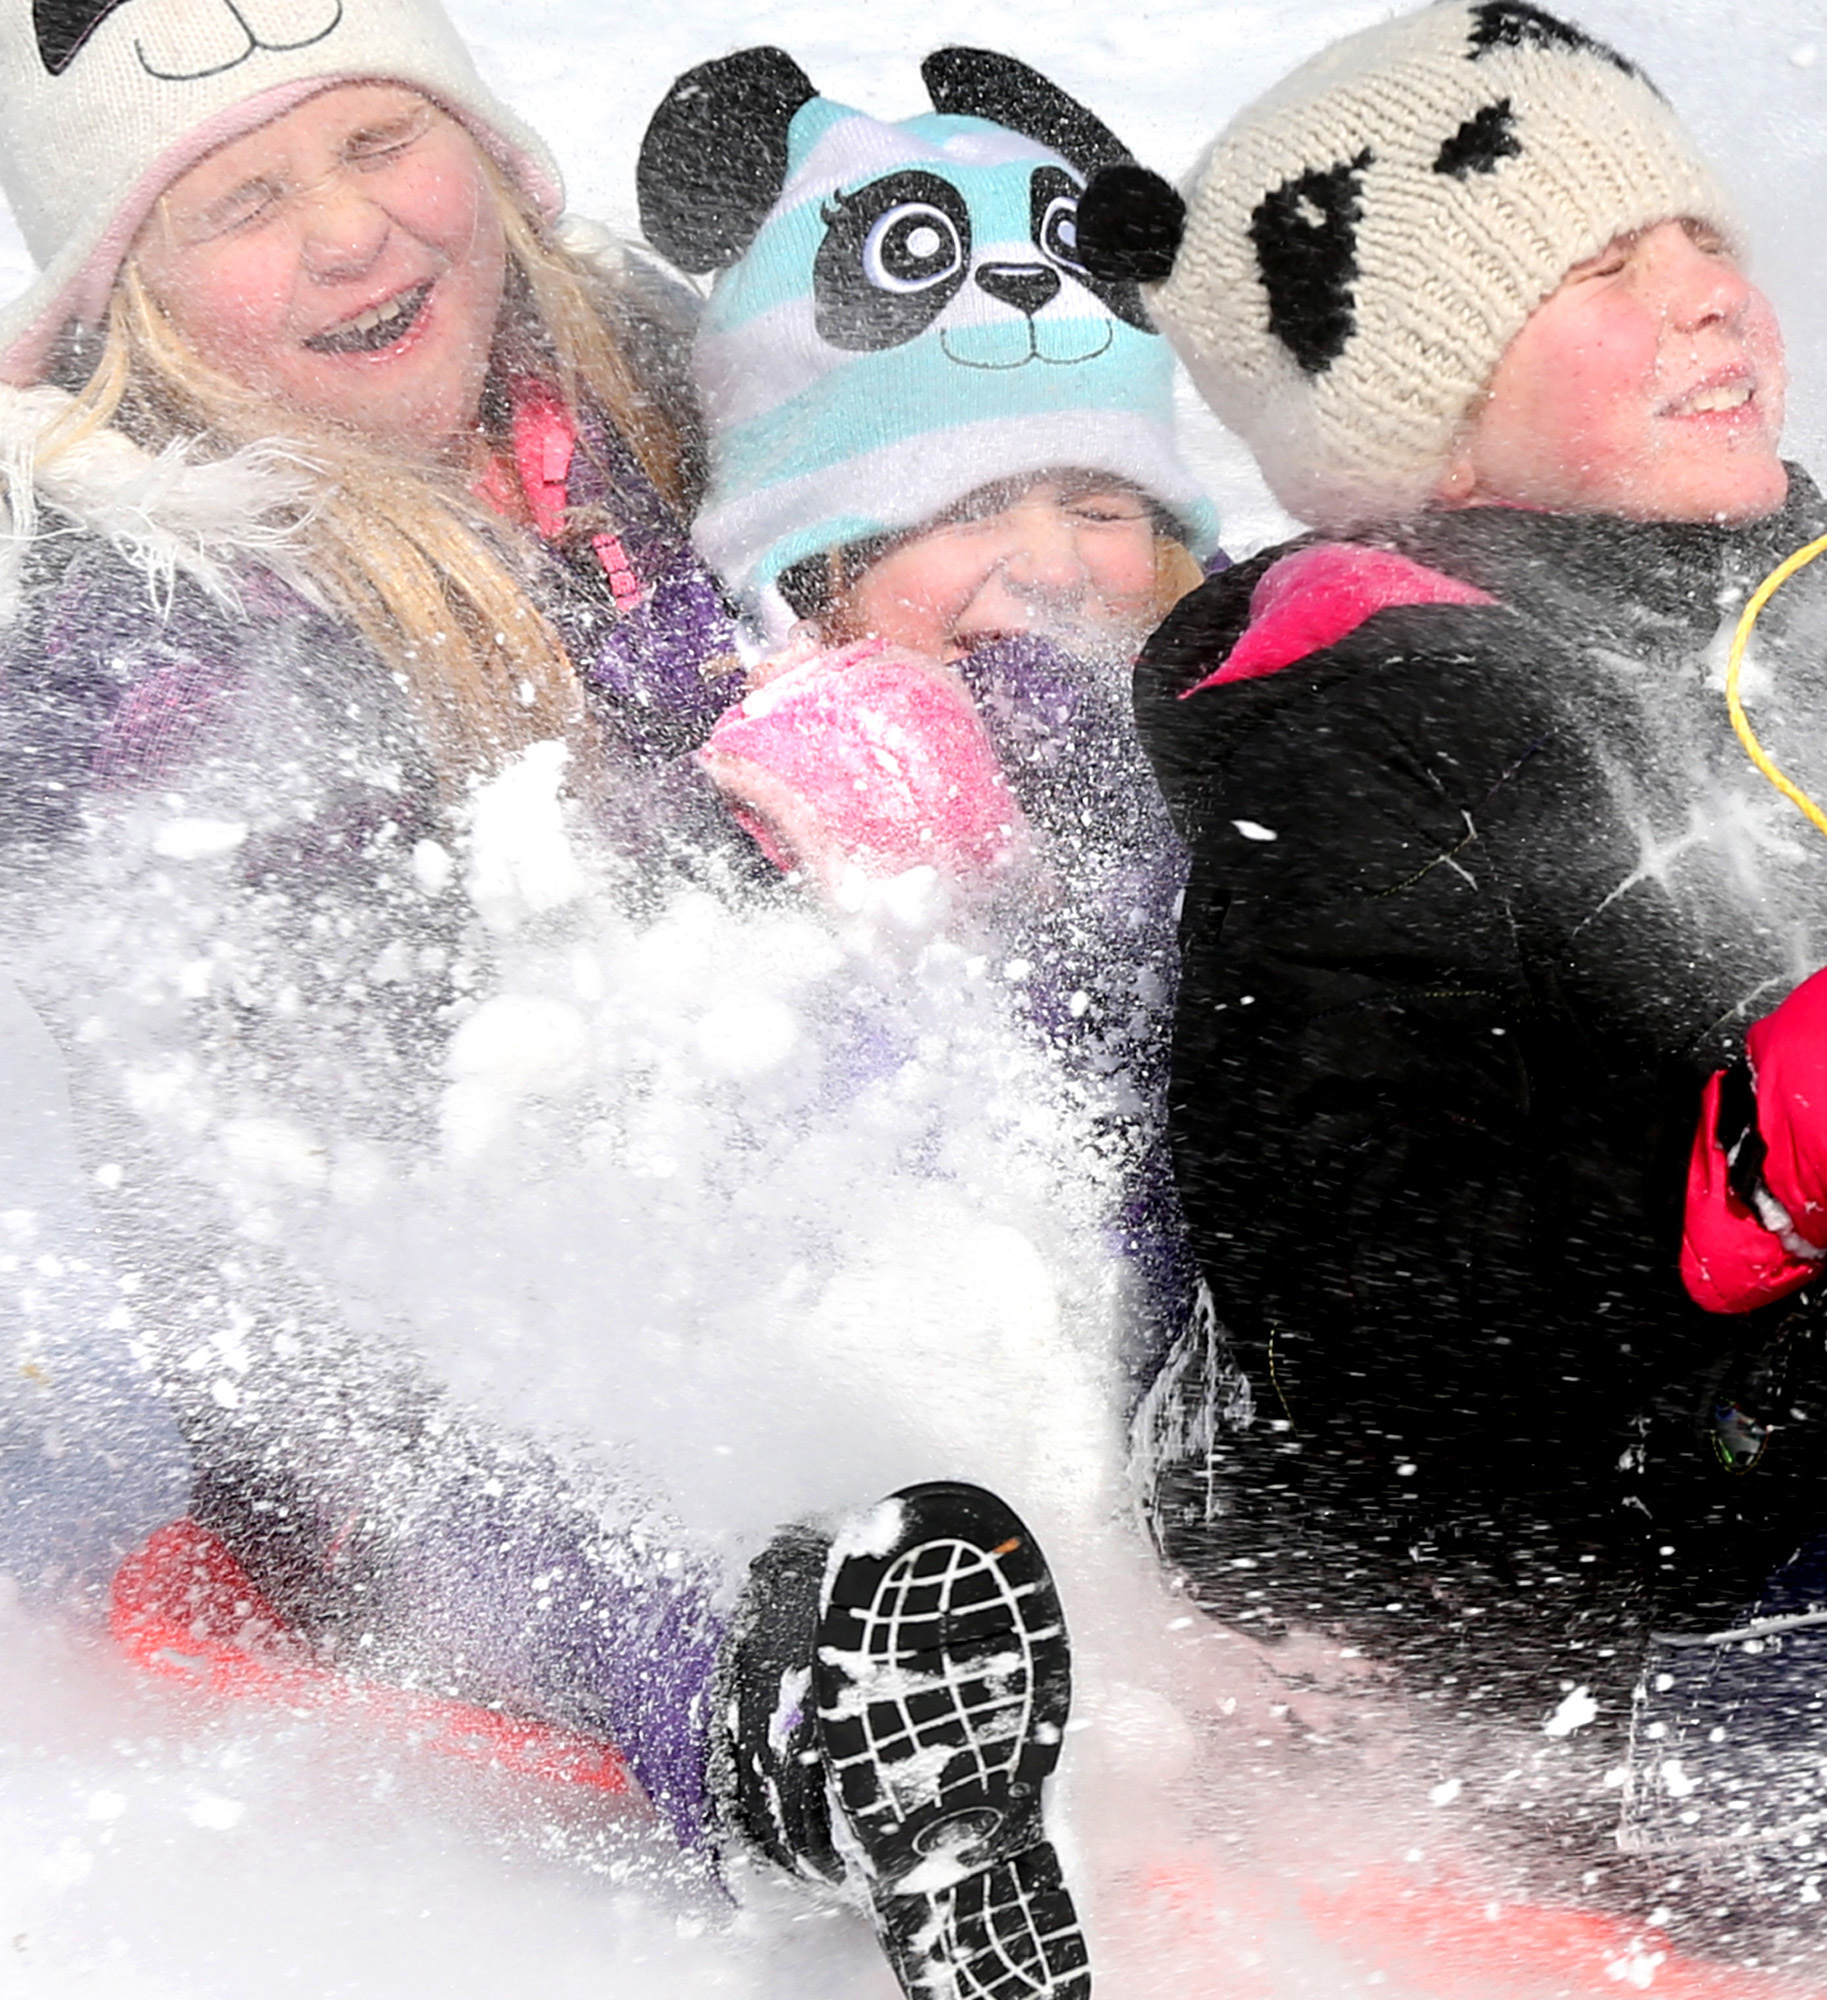 Doctor: Cold harder on kids than adults